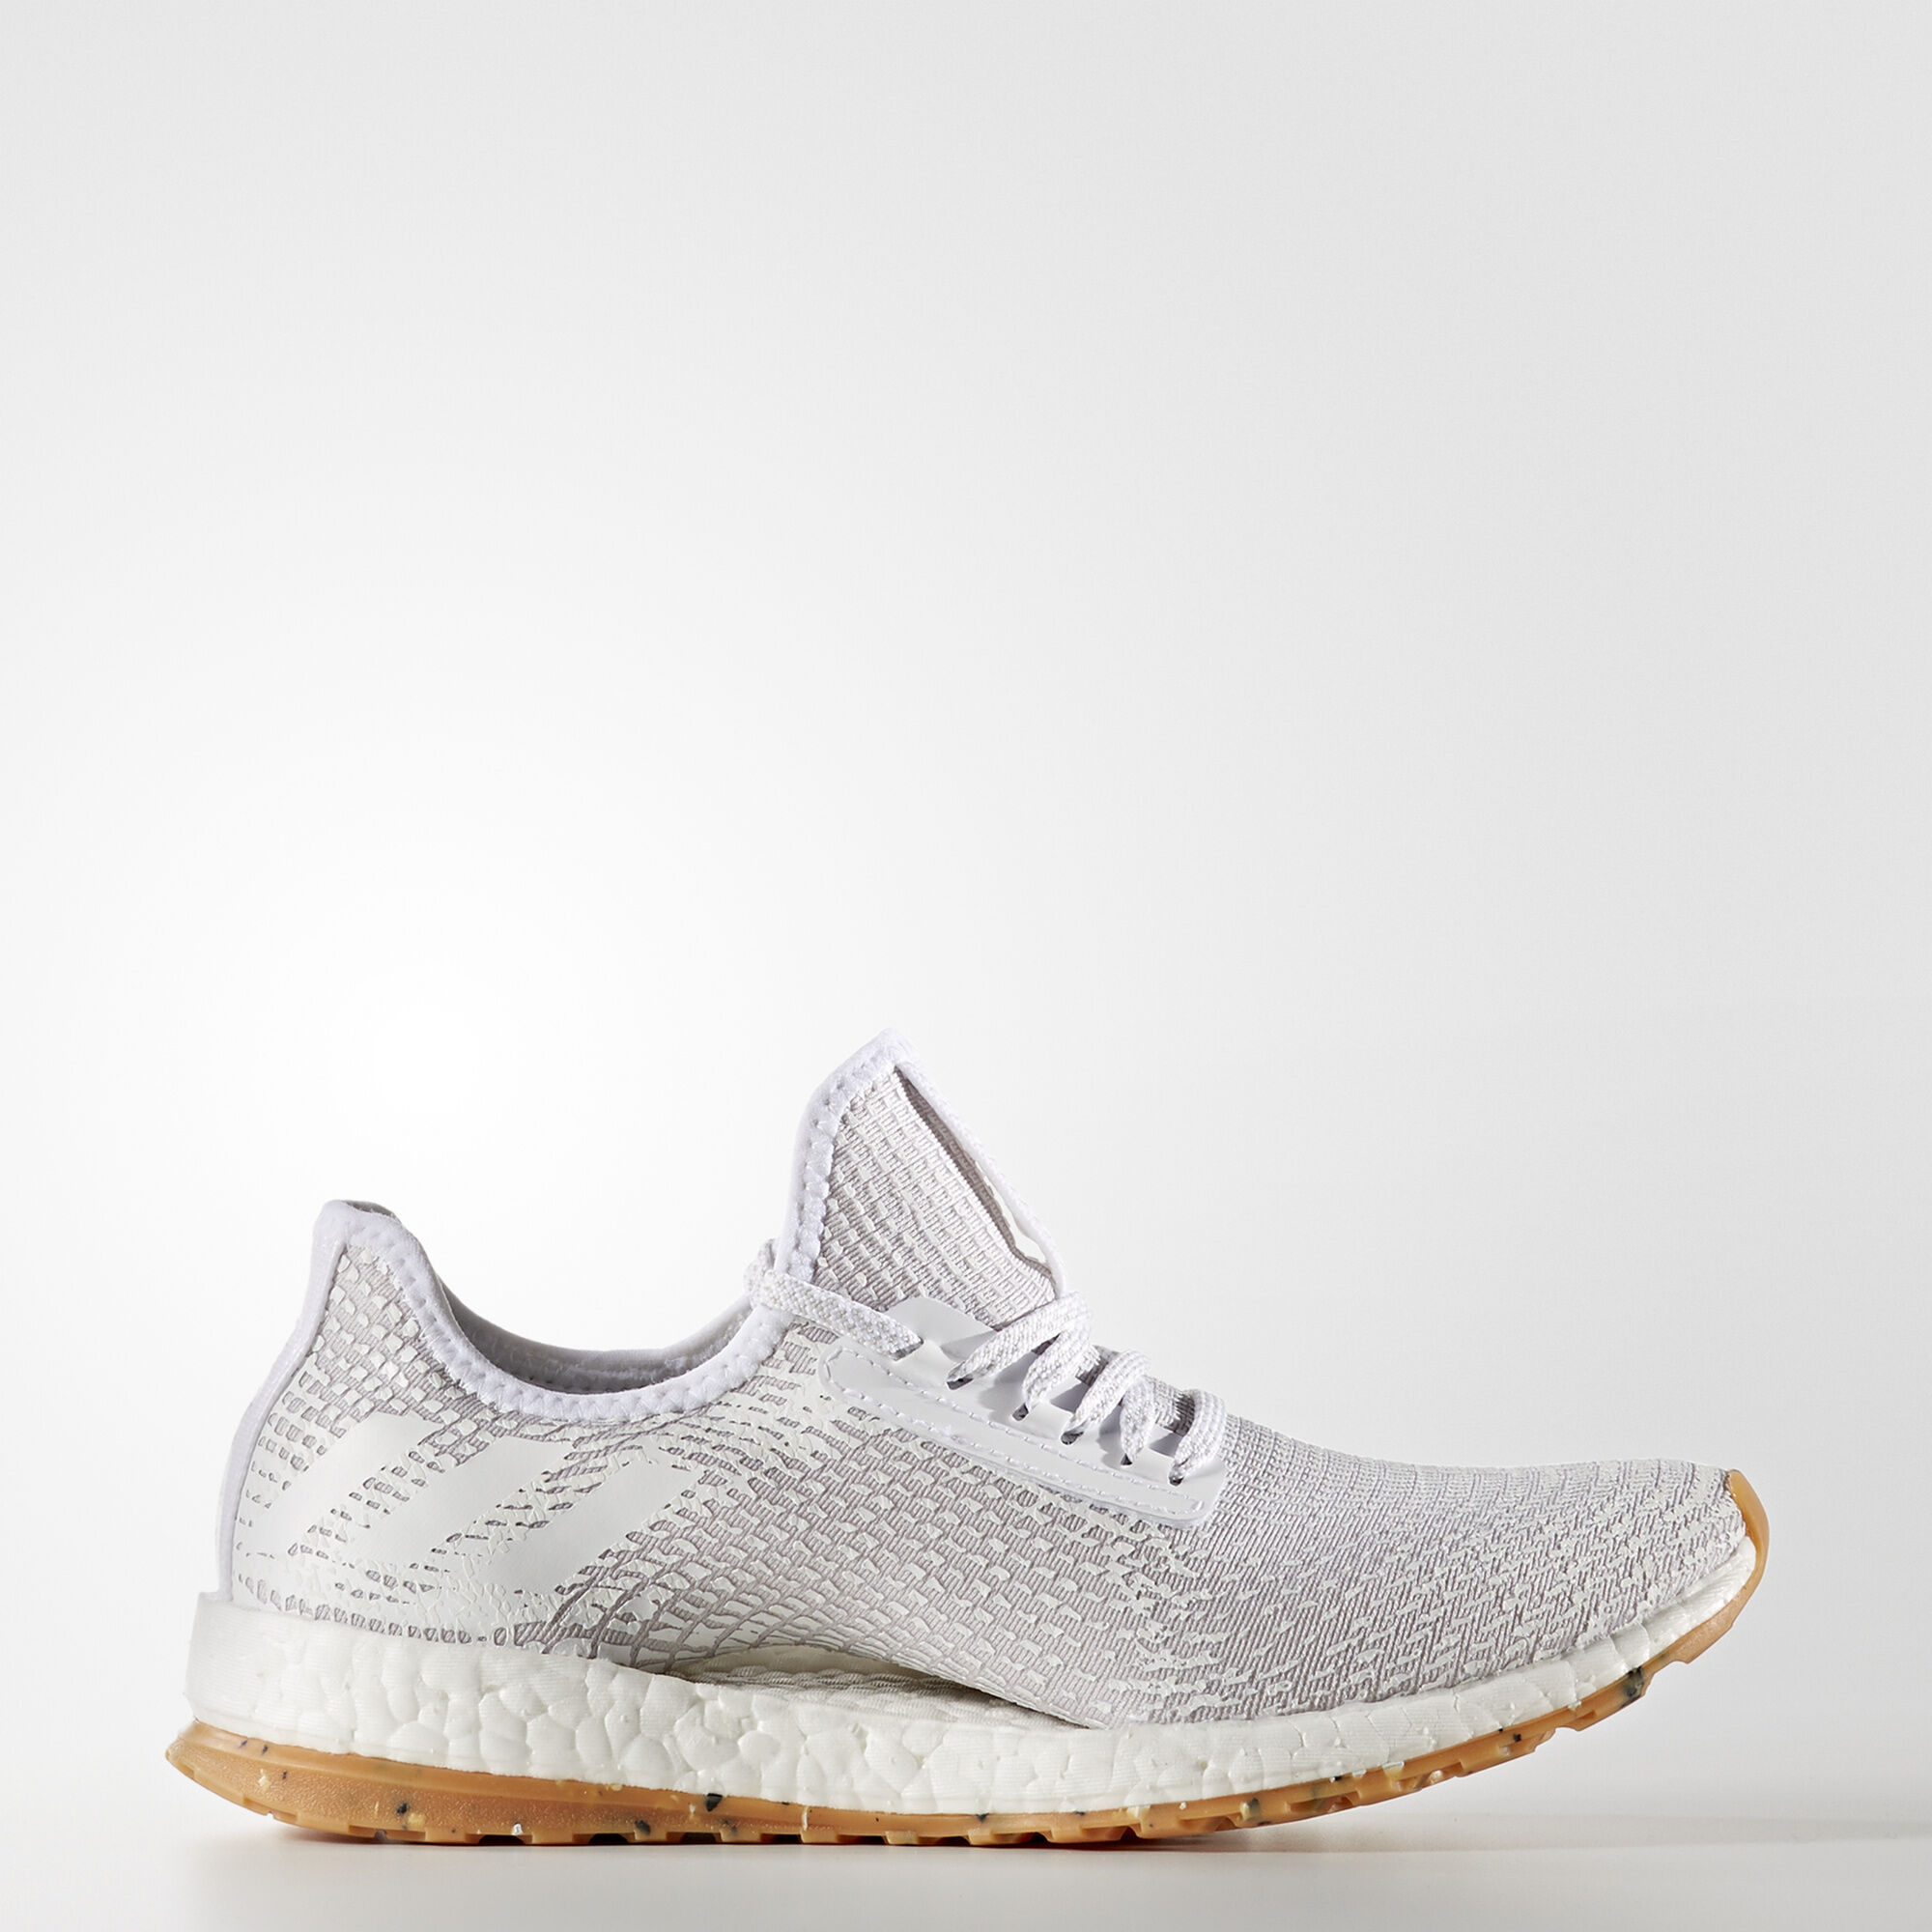 Adidas Pure Boost White